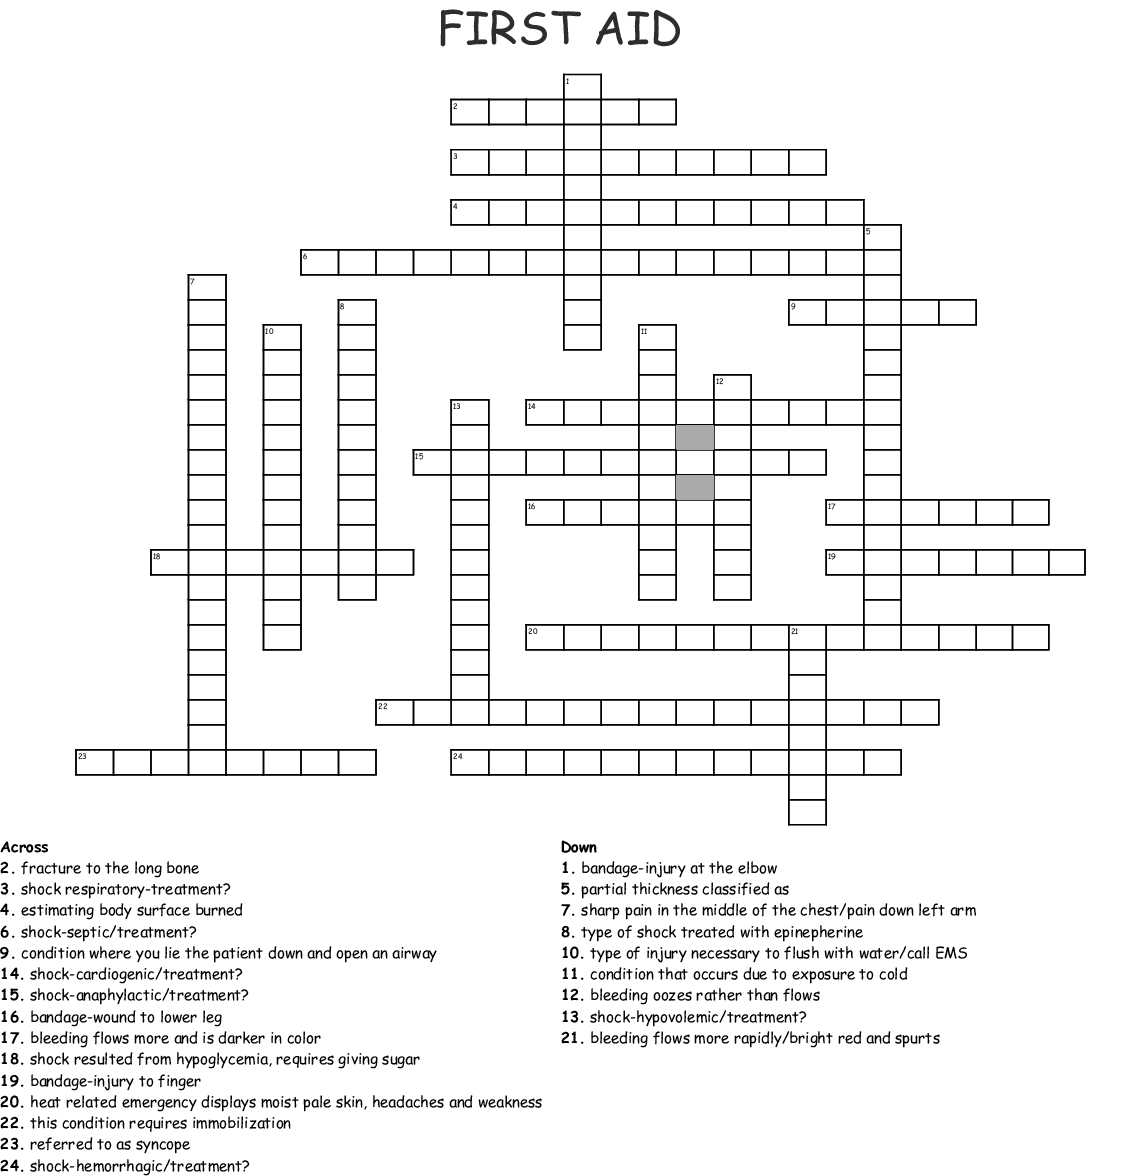 First Aid Crossword - Wordmint - Printable Crossword Puzzle First Aid